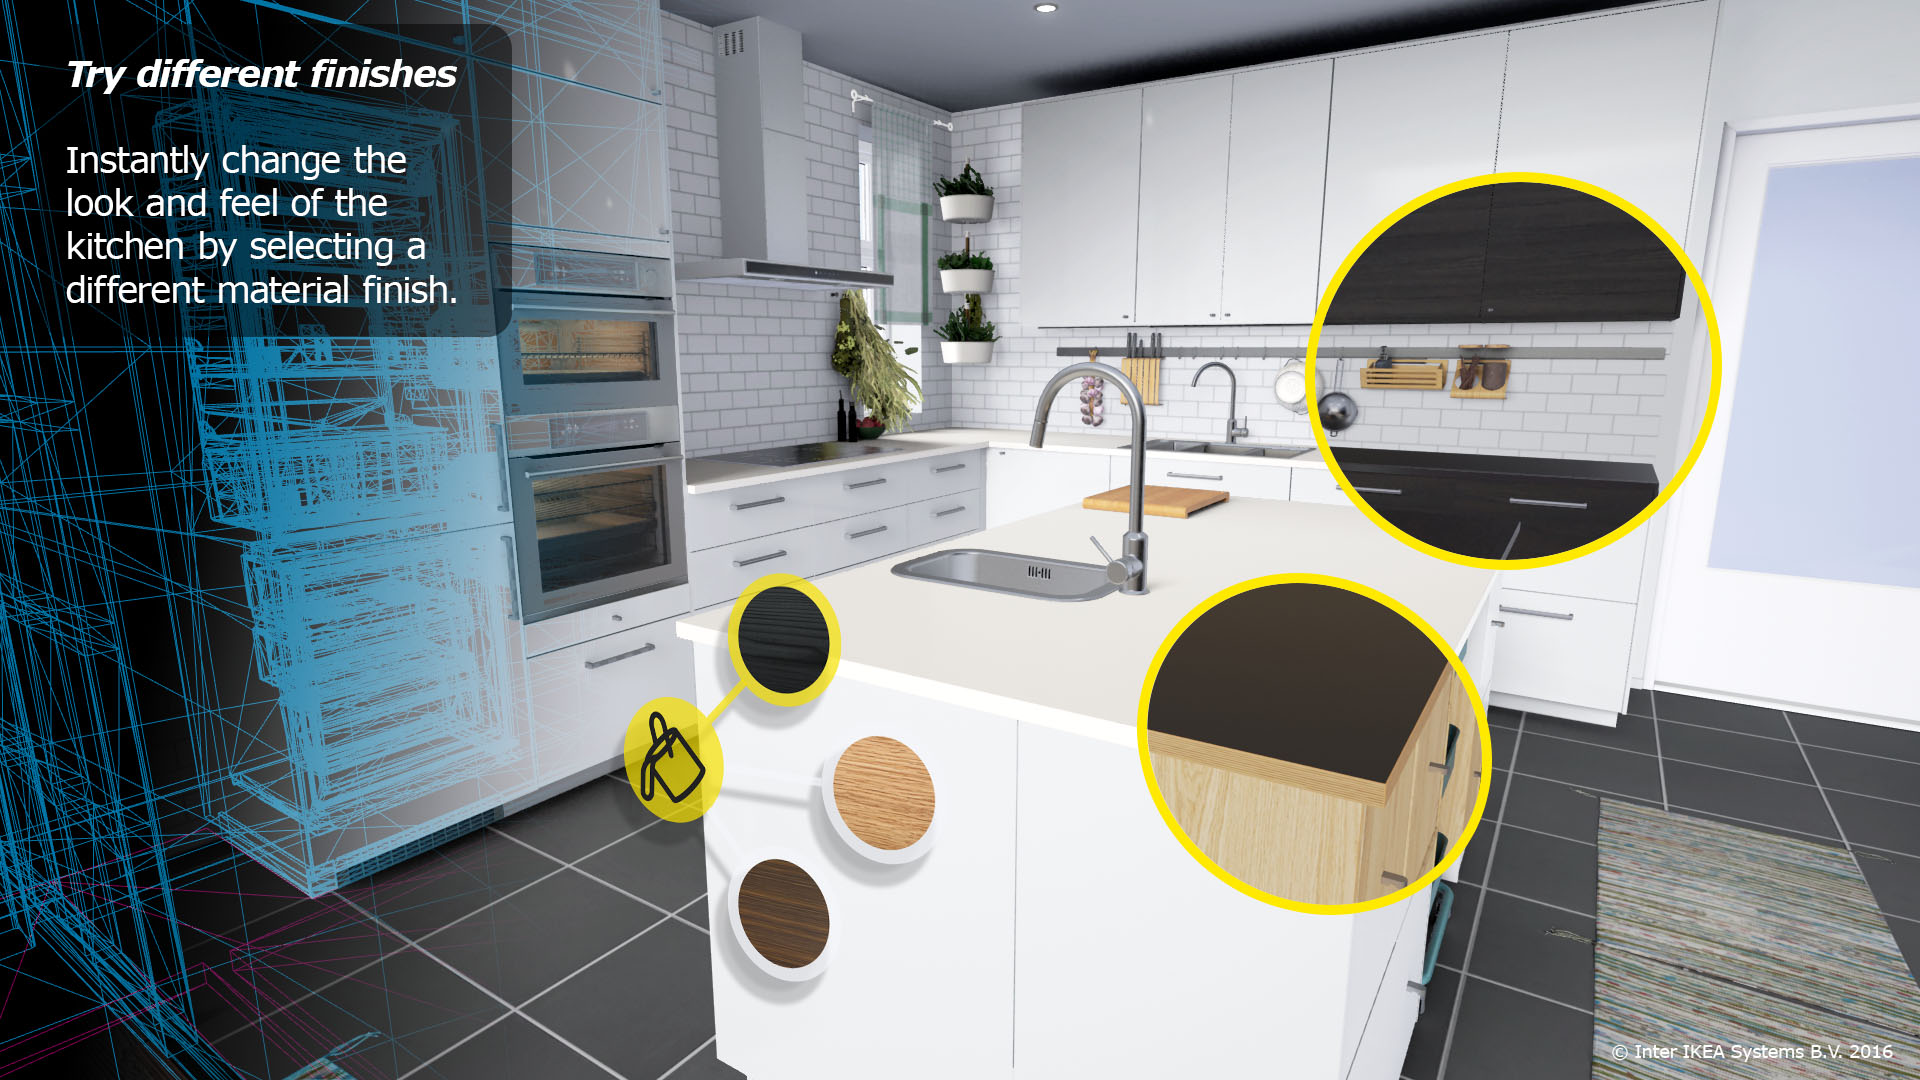 Ikea Kitchen Design Visit Ikea Vr Experience On Steam